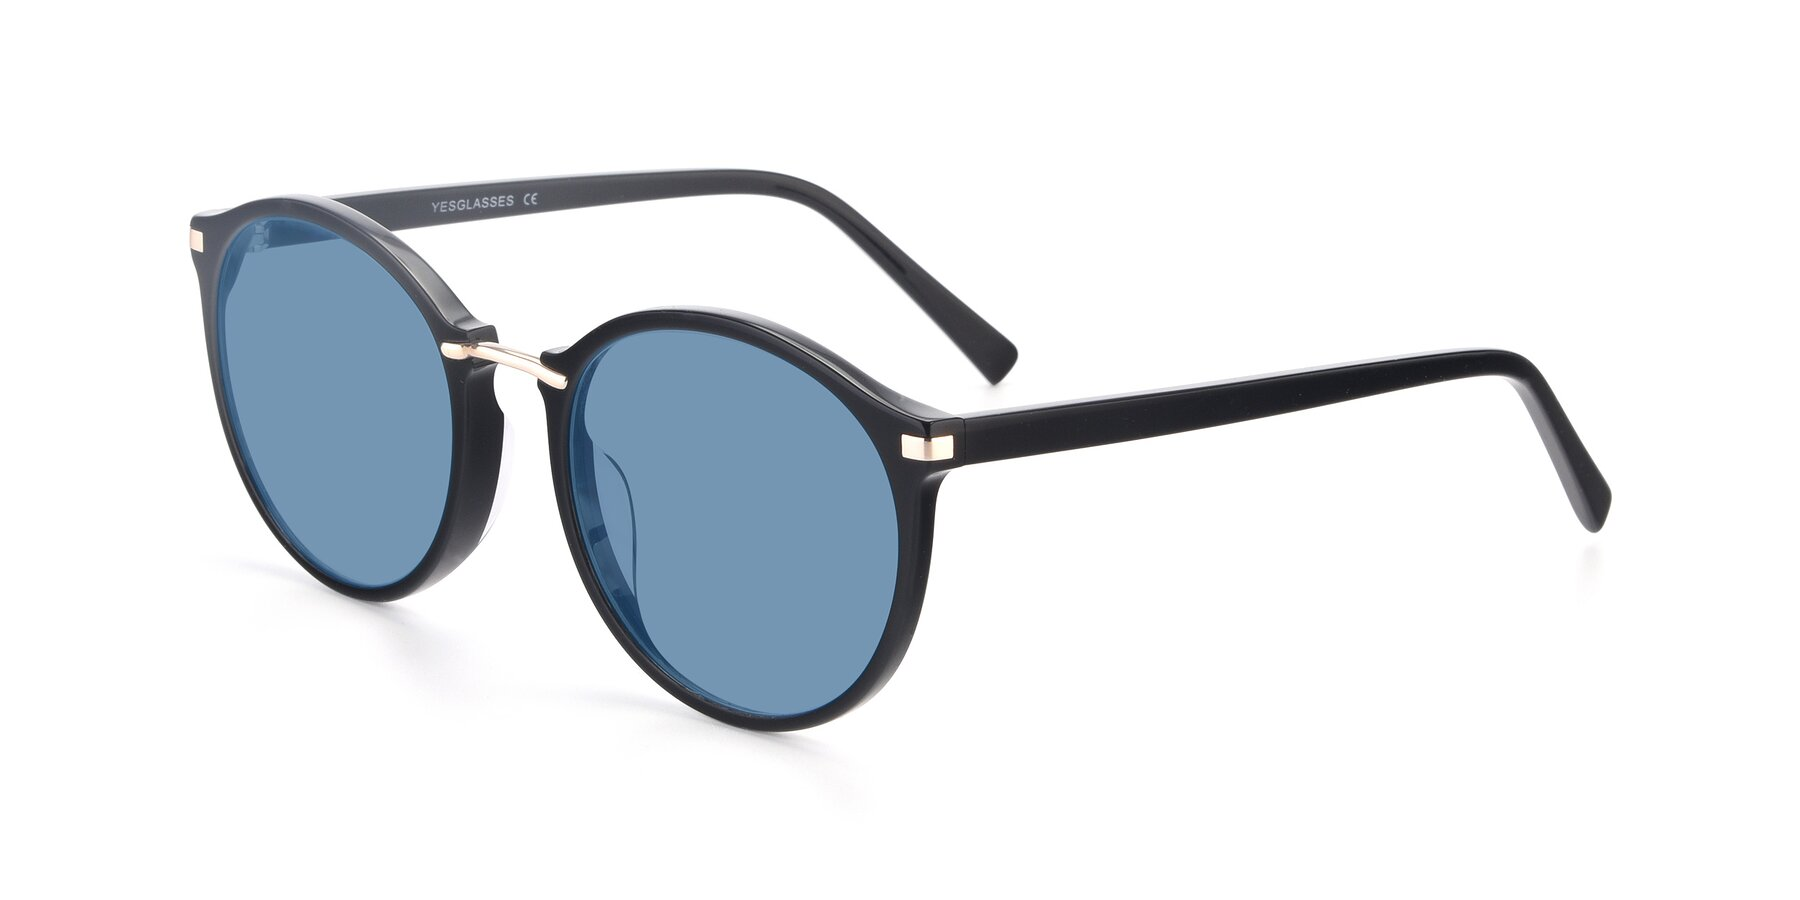 Angle of 17582 in Black with Medium Blue Tinted Lenses